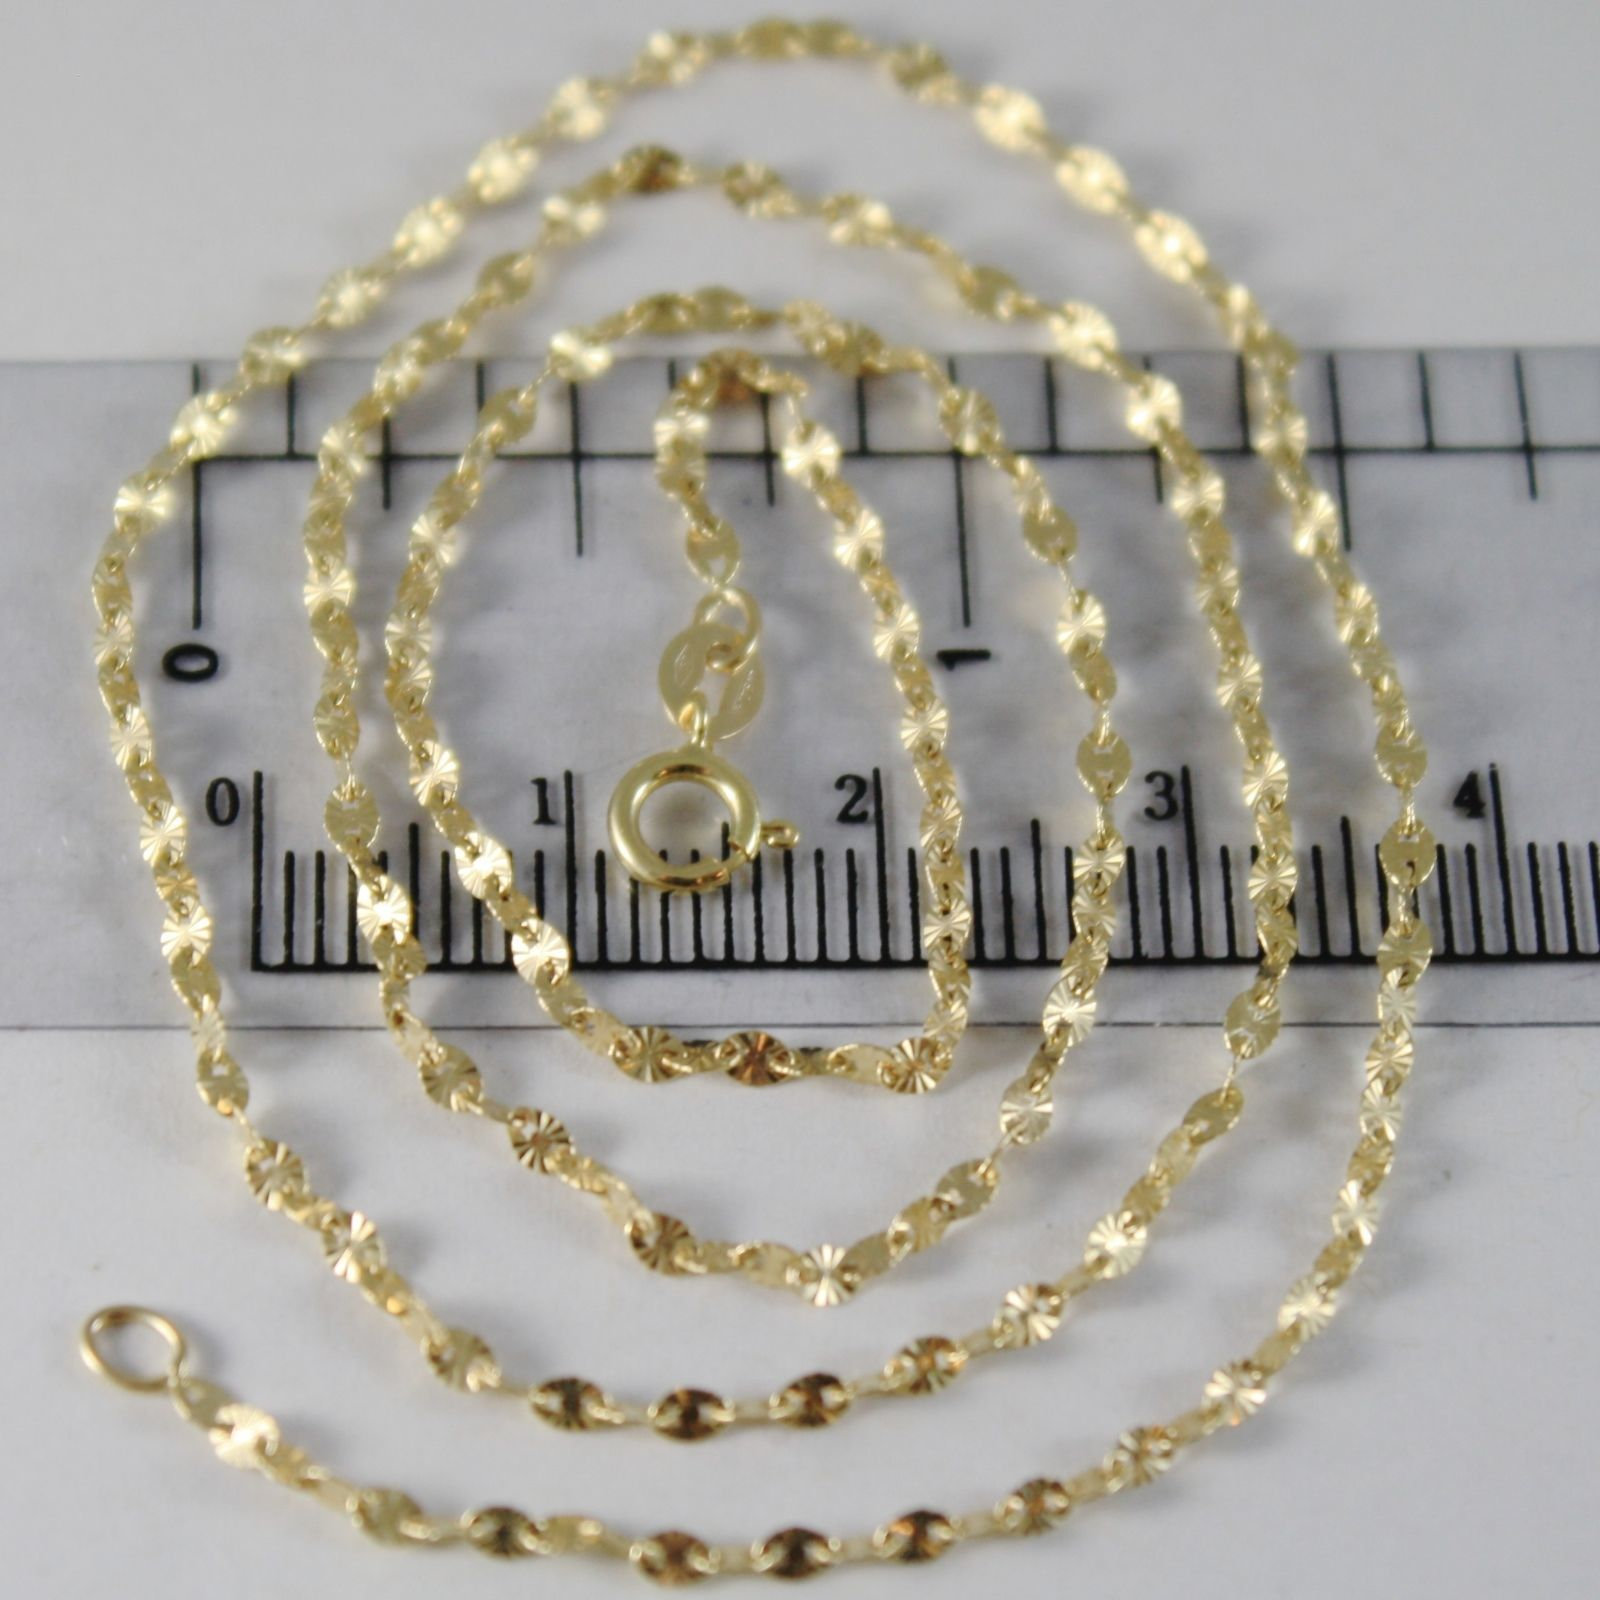 18K YELLOW GOLD CHAIN MINI STAR RAYS OVAL LINK 2 MM, 15.75 INCHES MADE IN ITALY